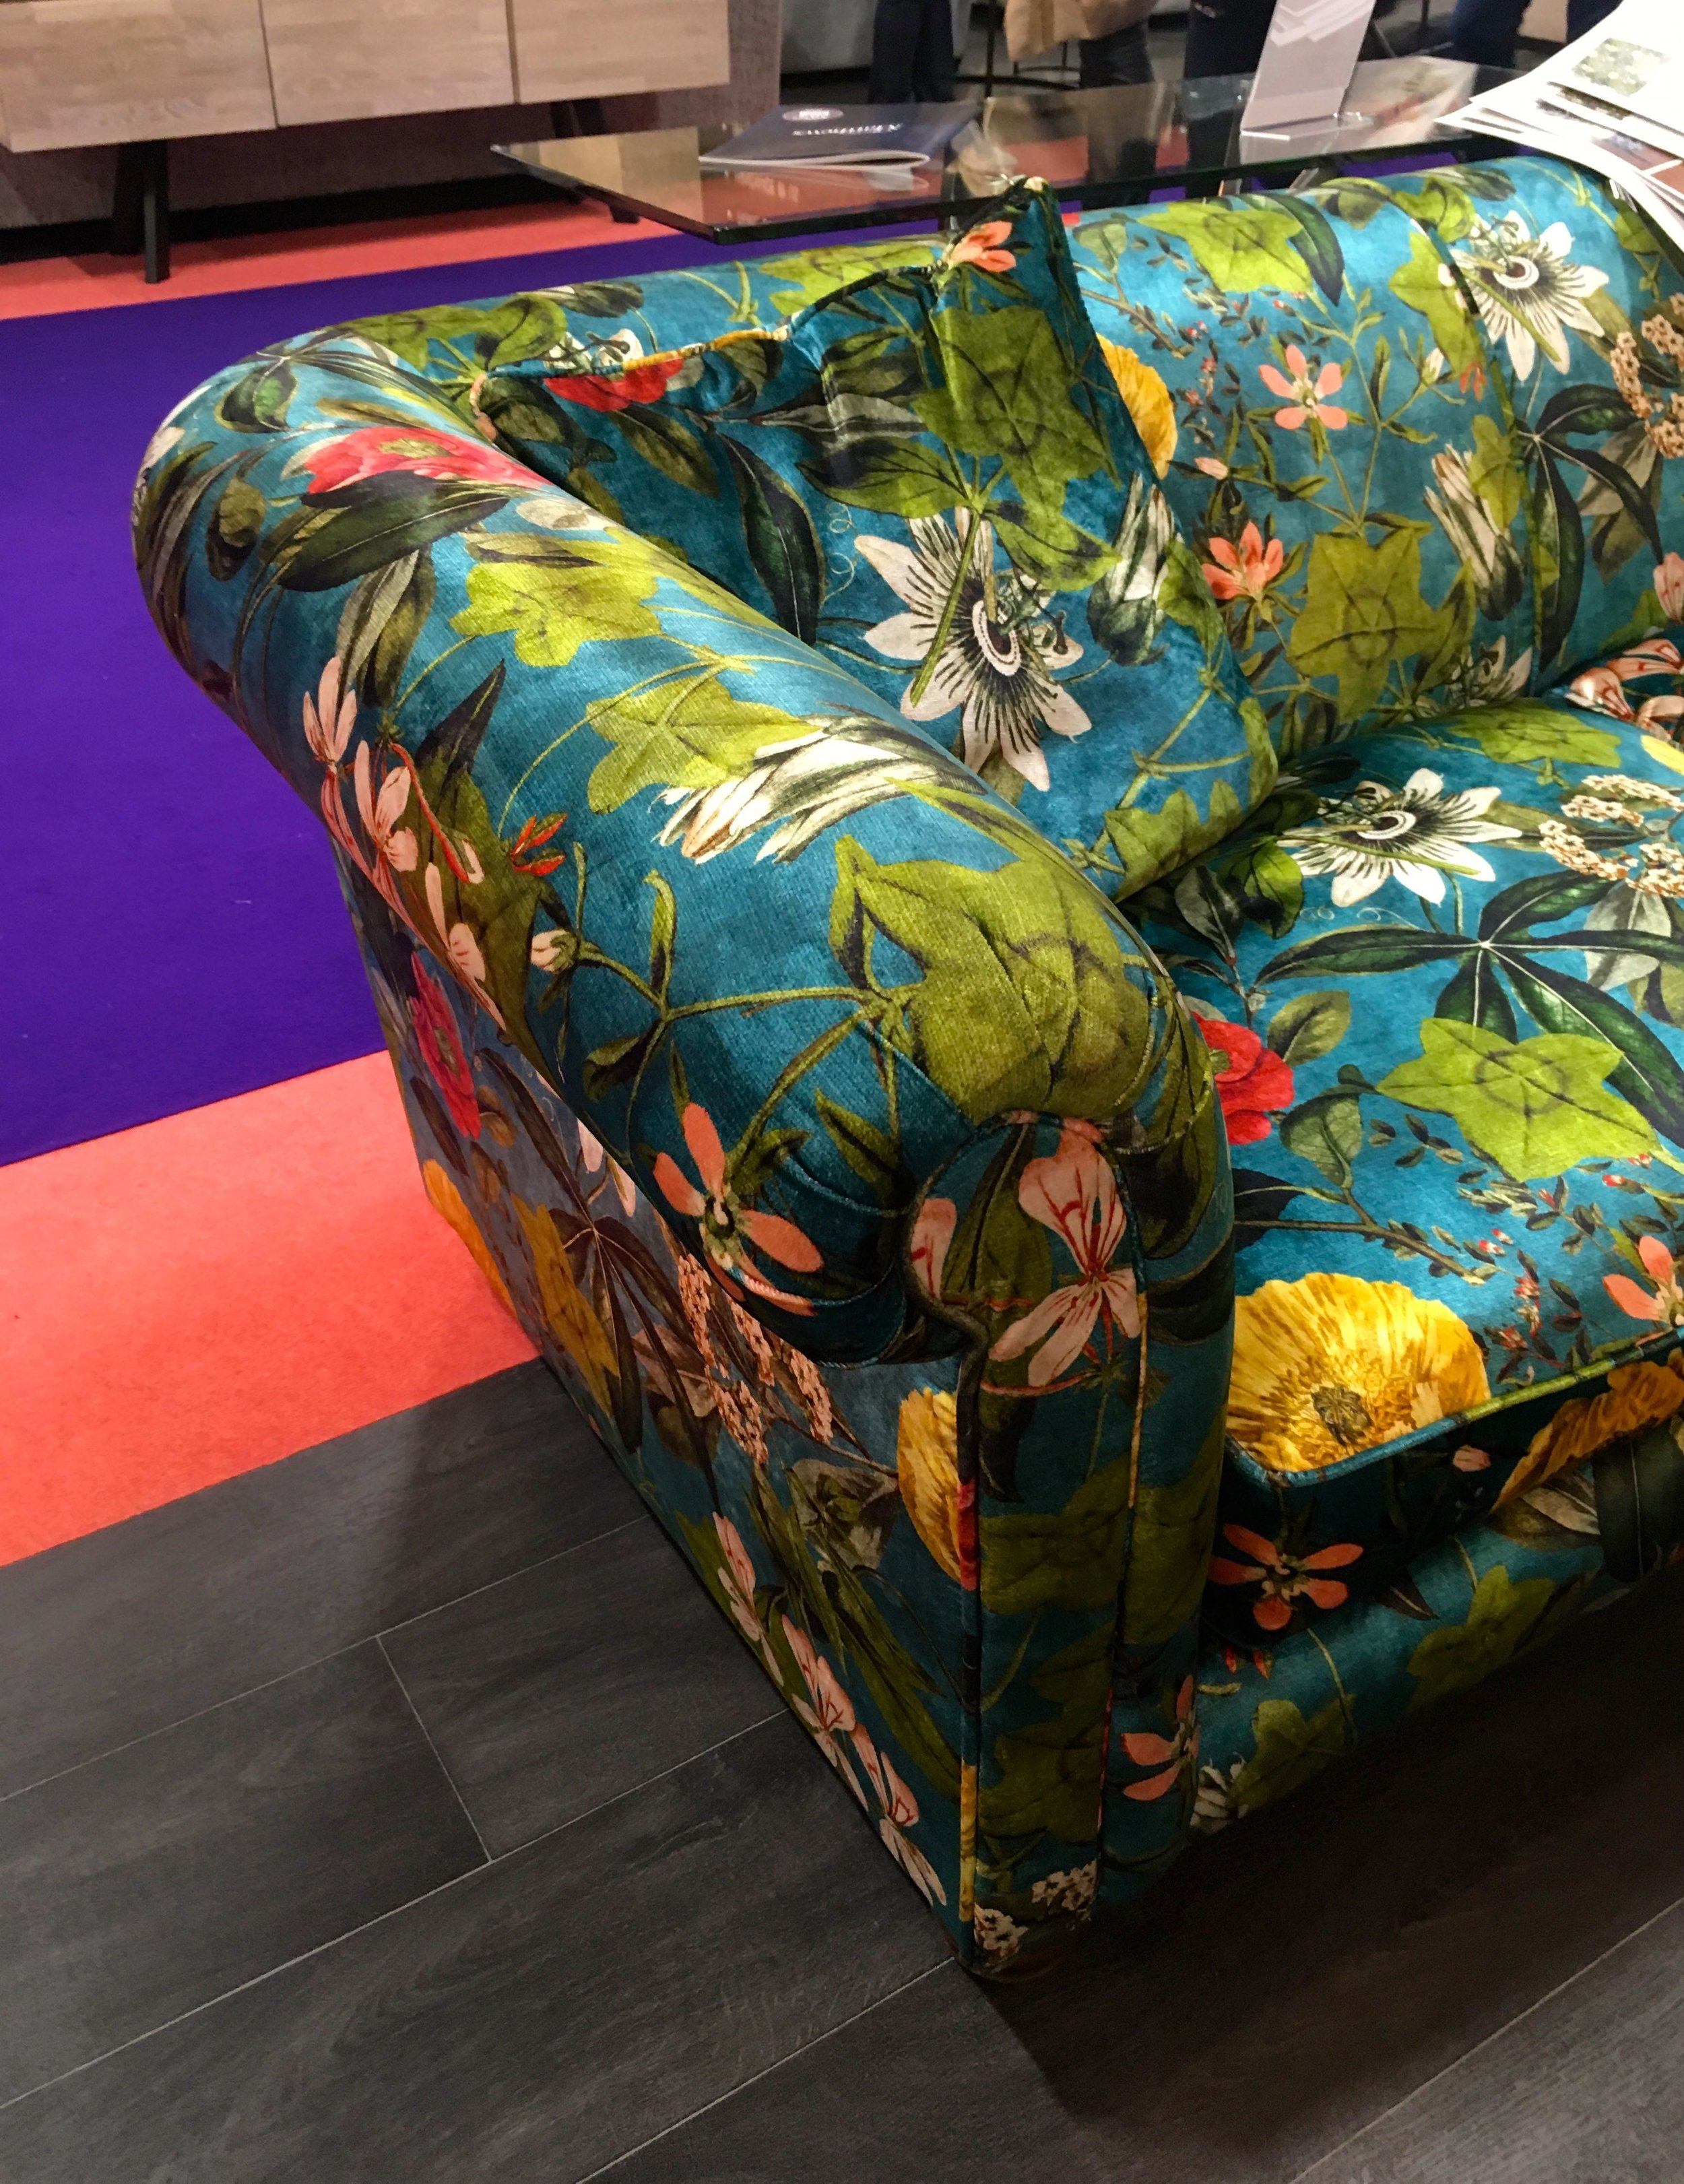 A PATTERNED SOFA